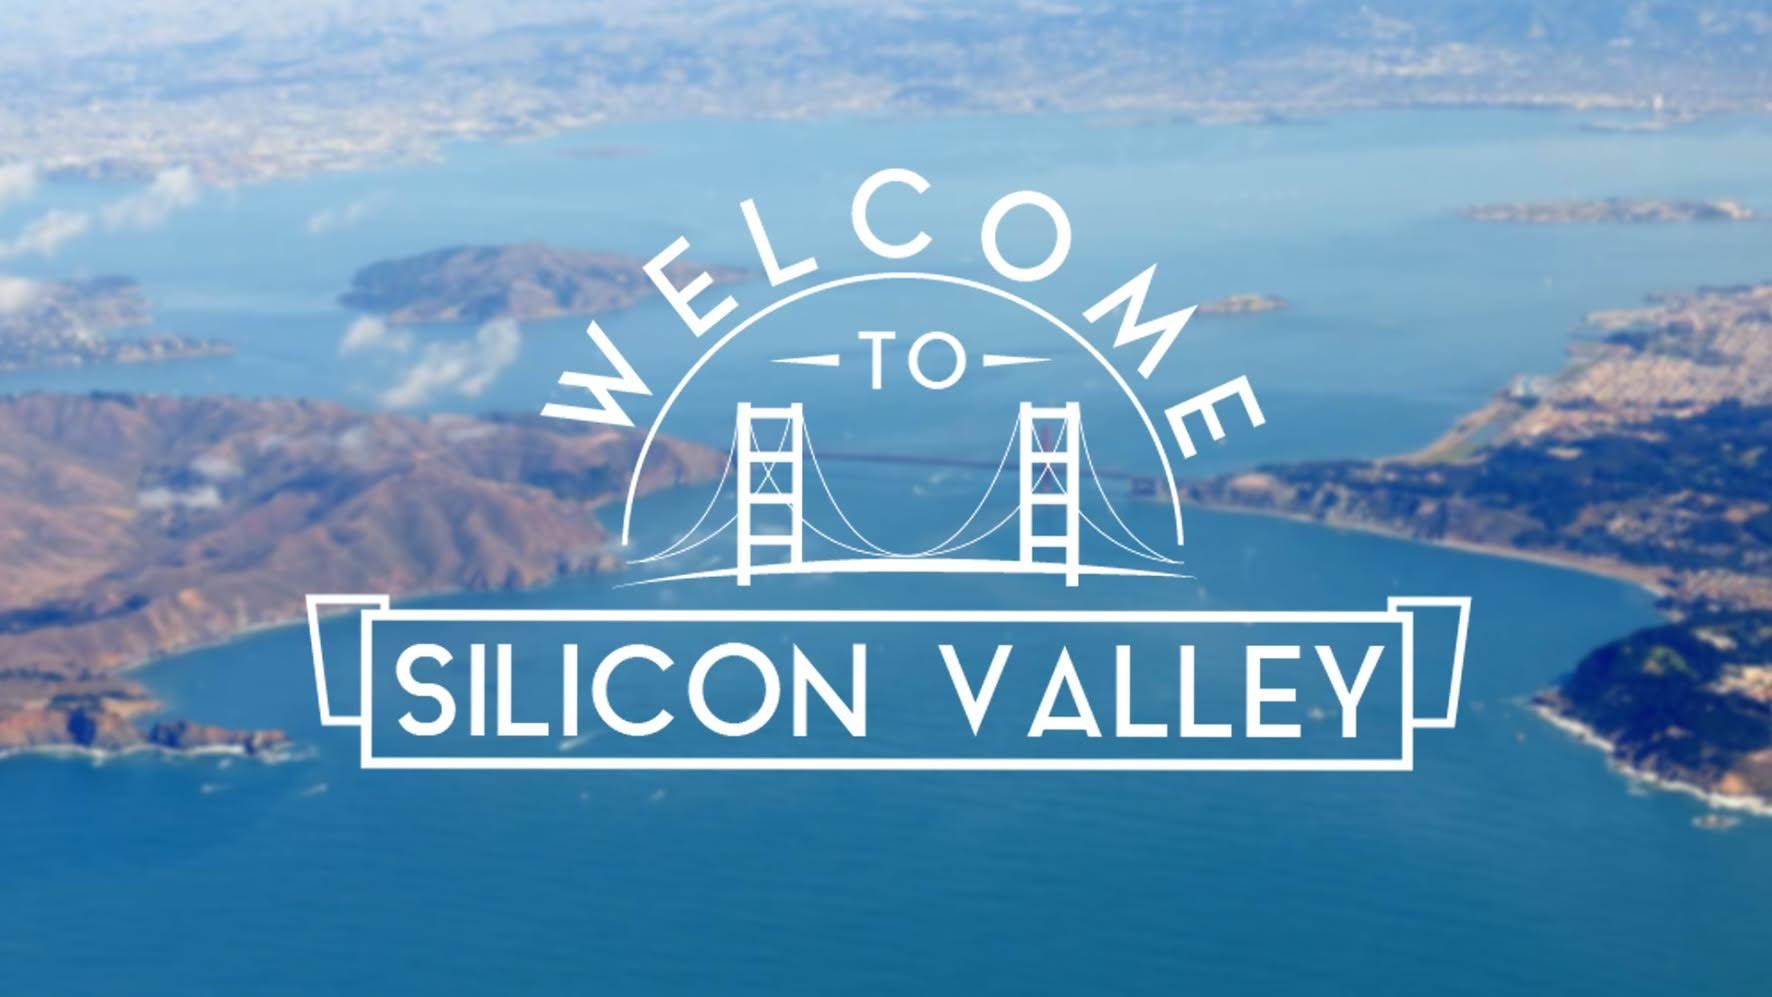 Silicon Valley business enviroment